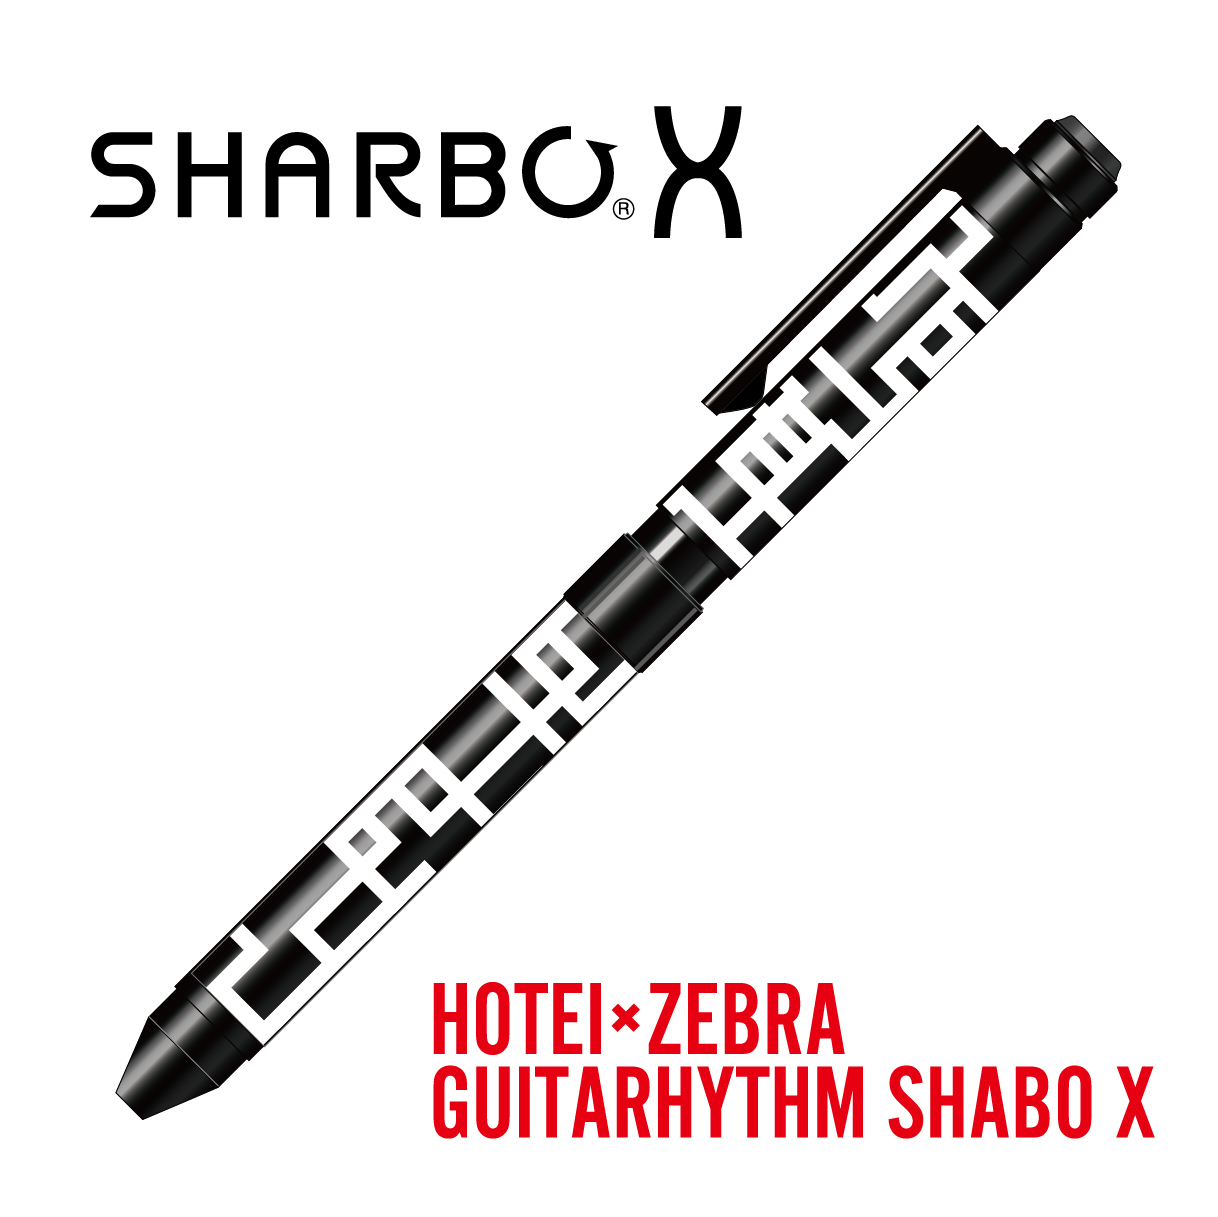 HOTEI×ZEBRA GUITARHYTHM SHARBO X